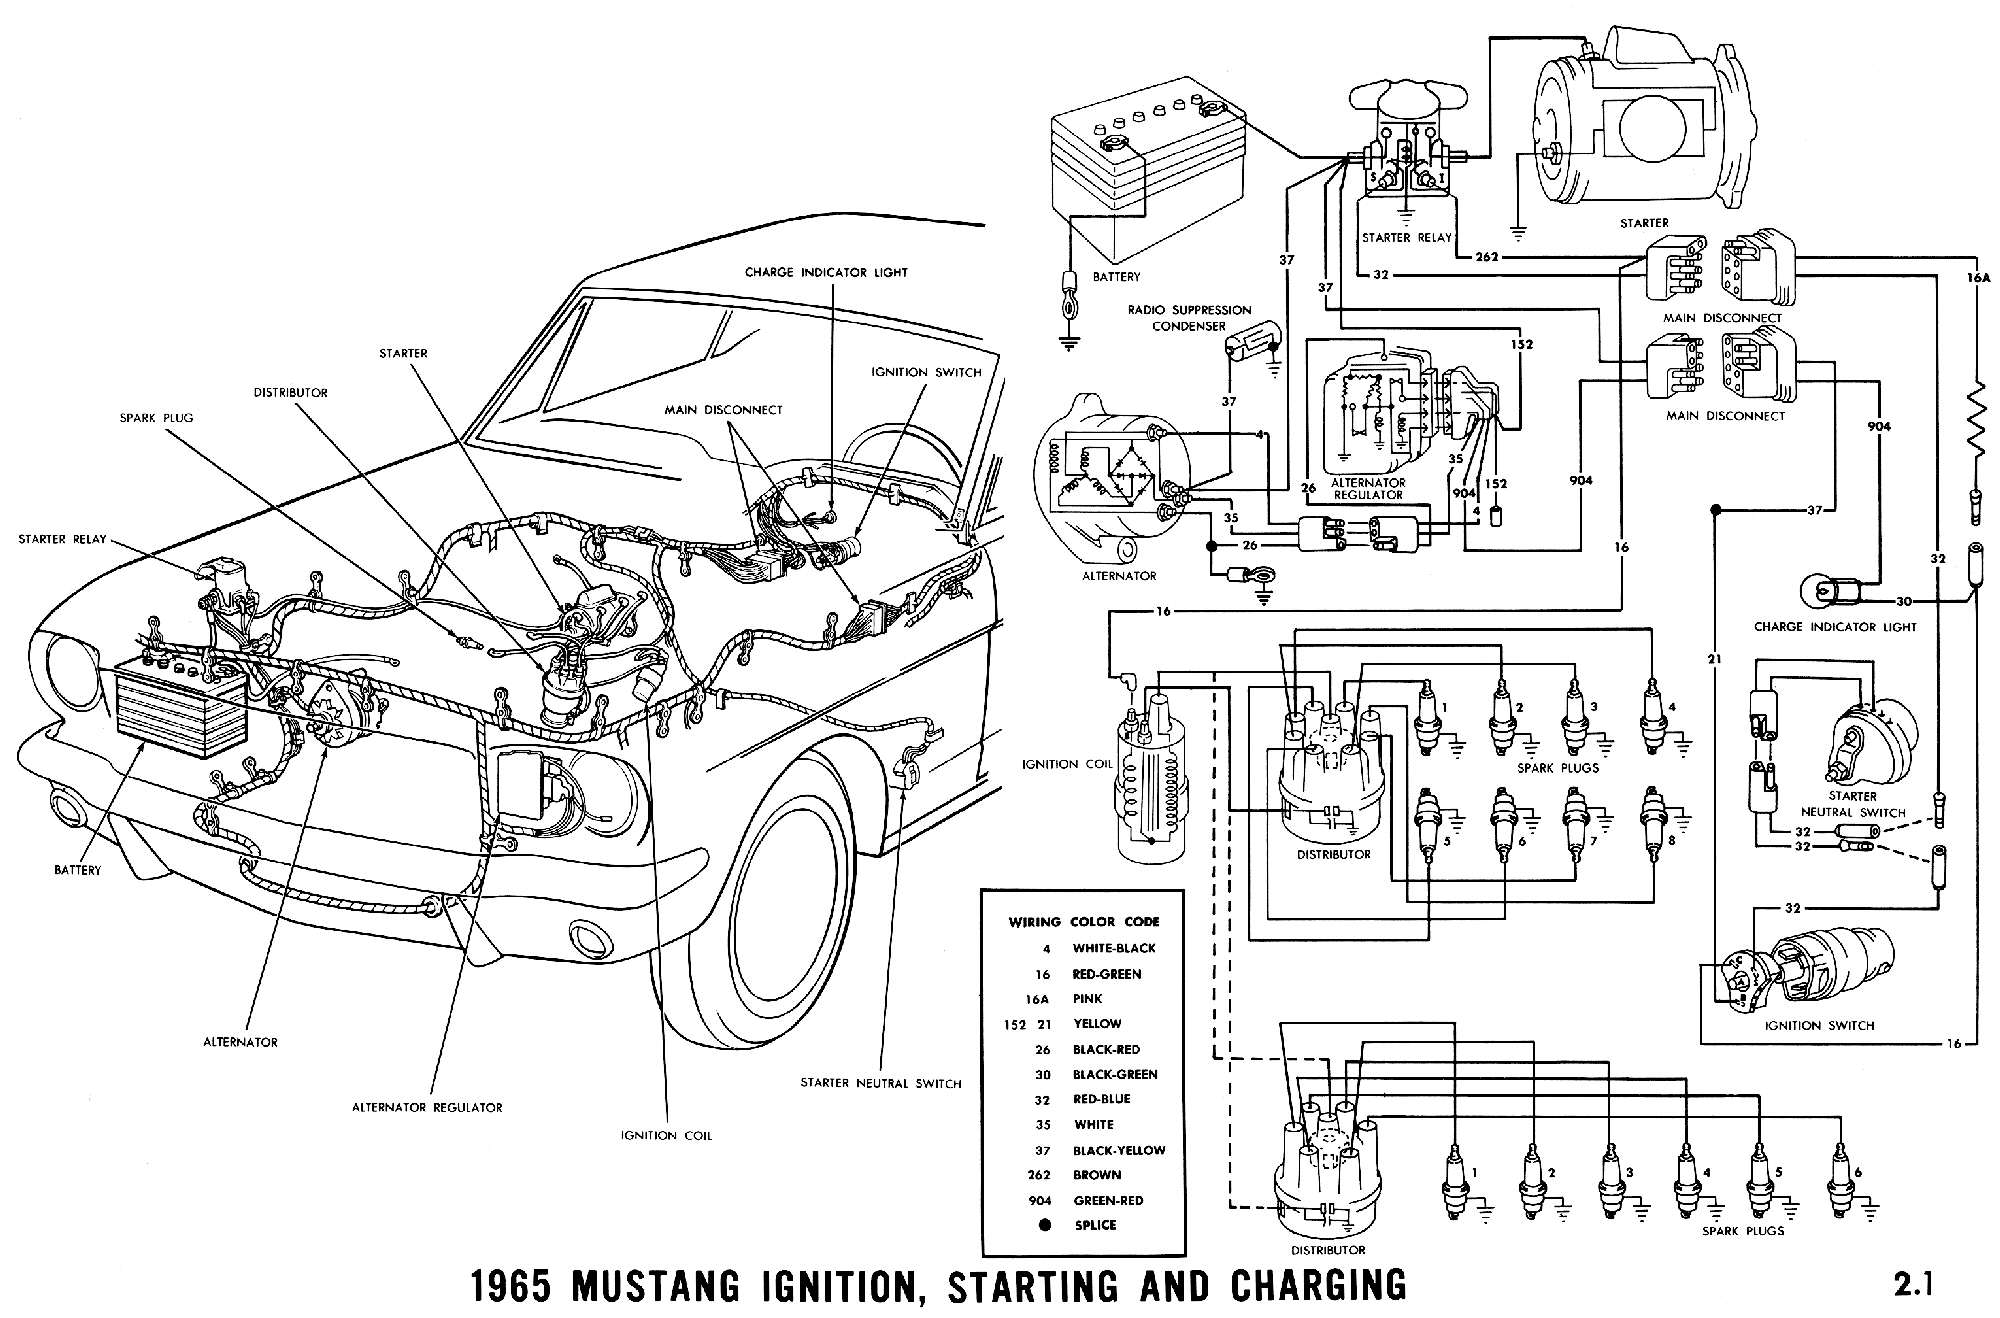 1965c 1965 mustang wiring diagrams average joe restoration mustang wiring harness at reclaimingppi.co